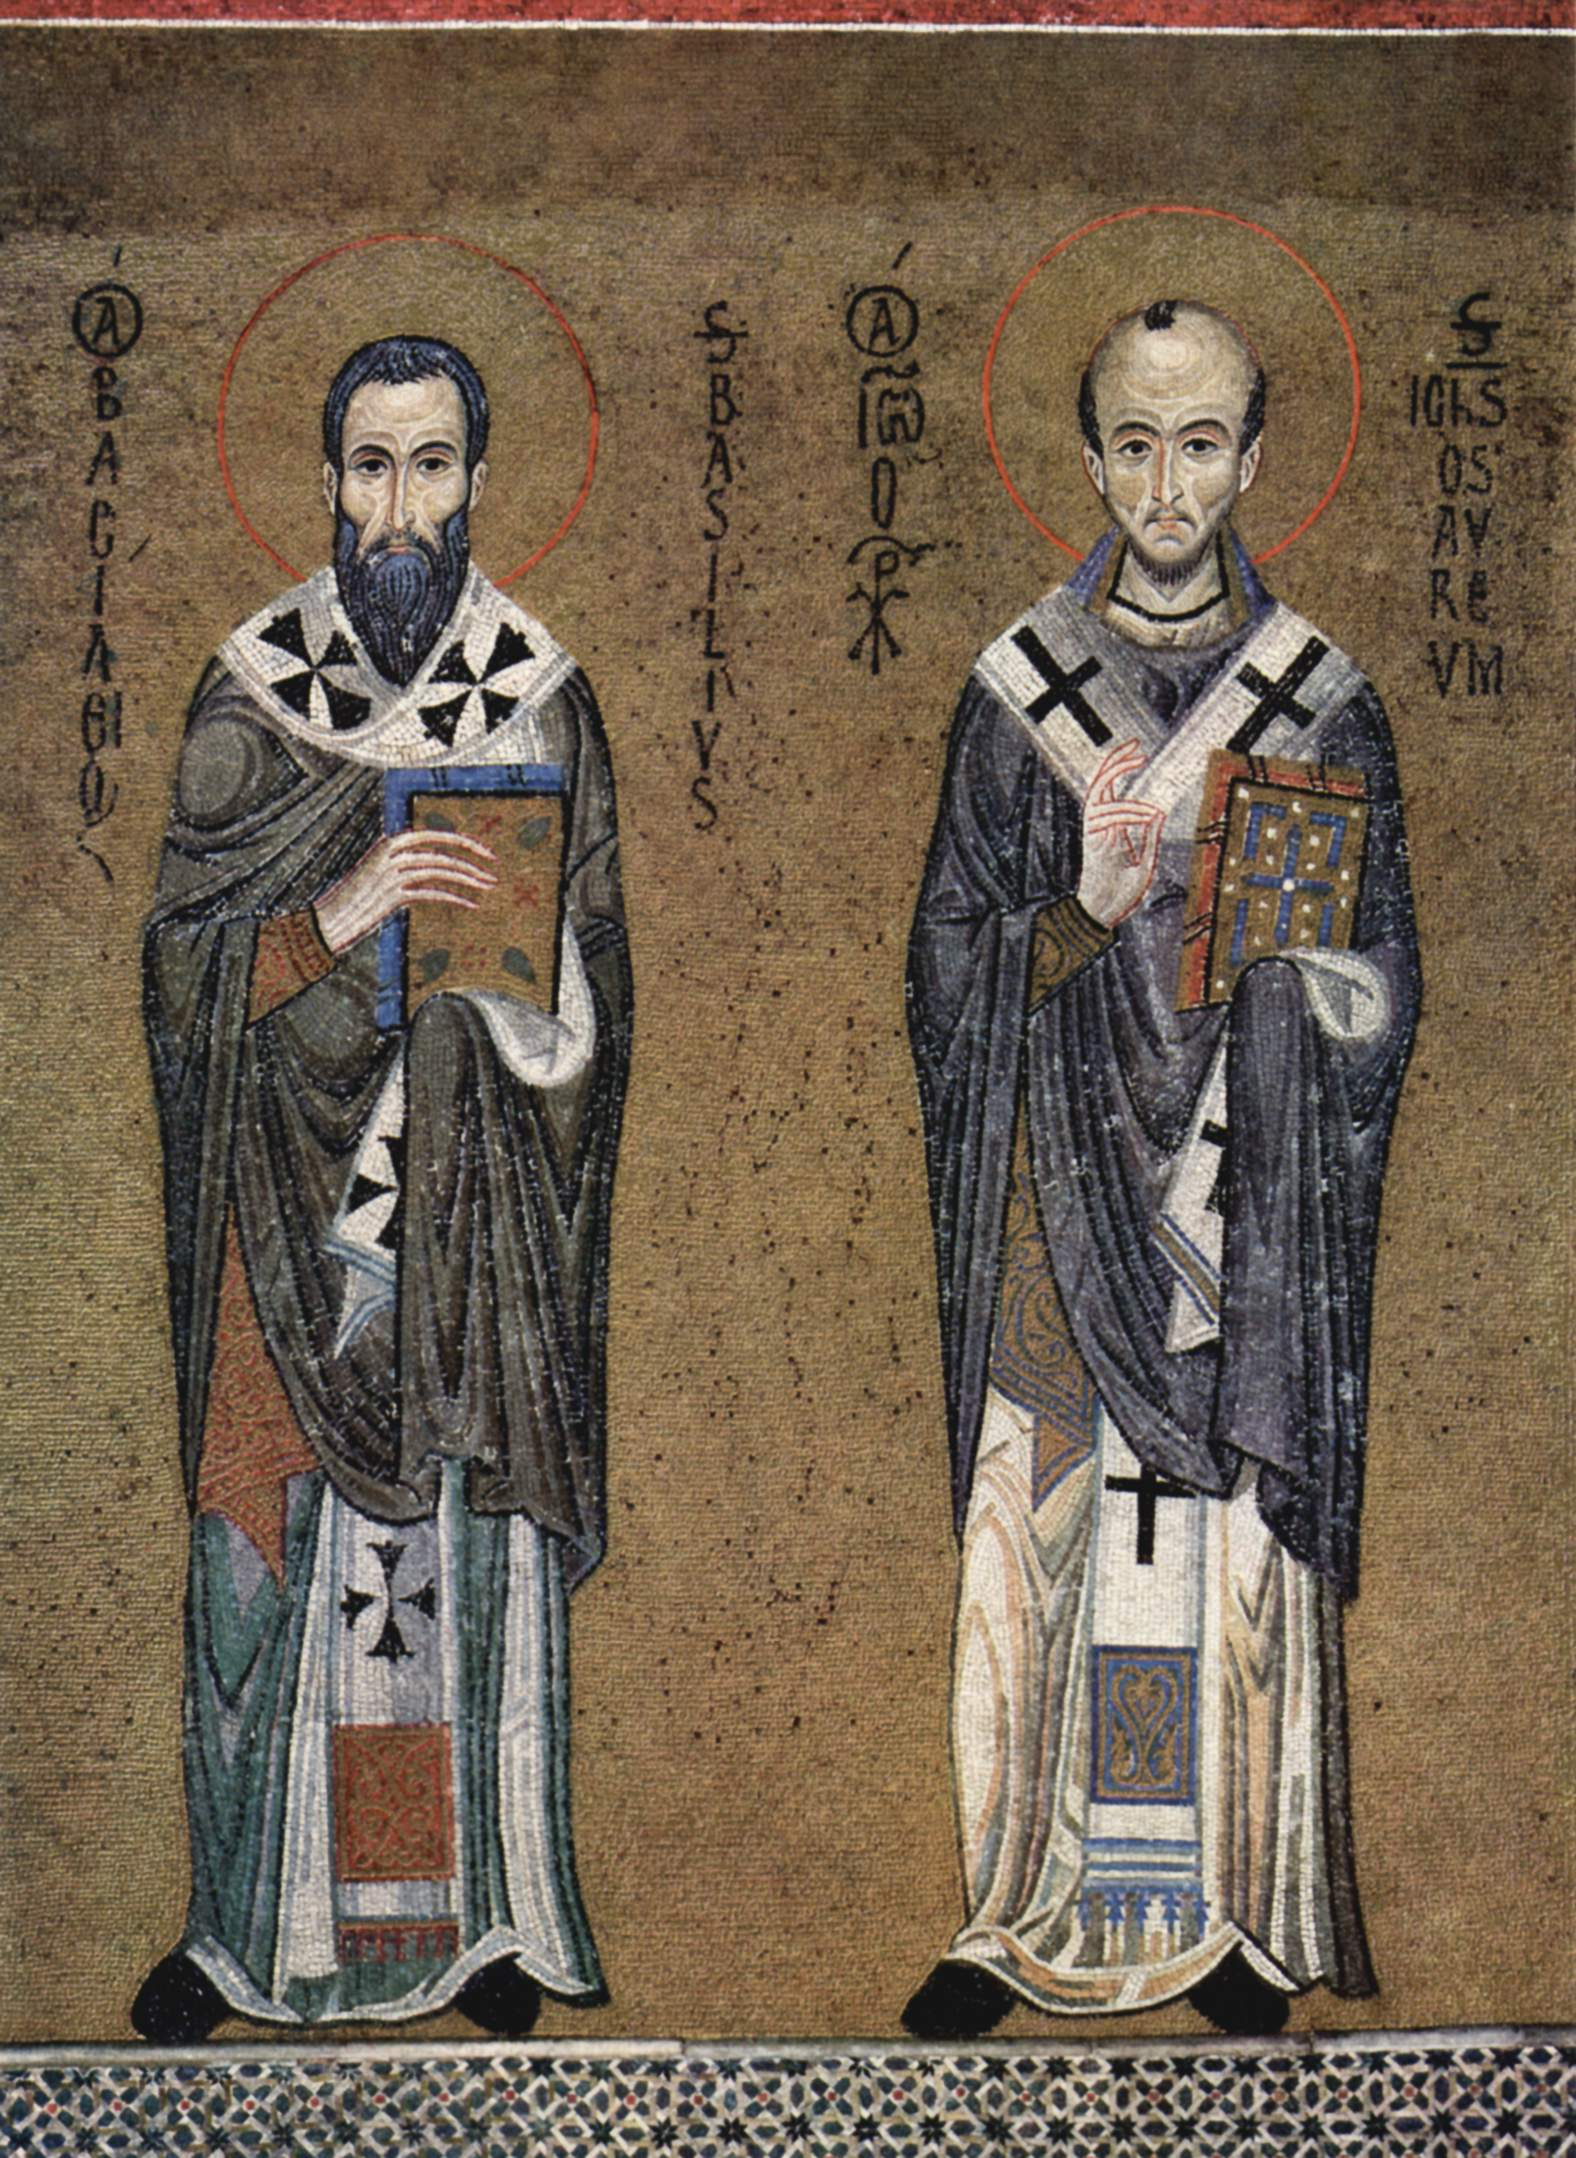 St John Chrysostom and St Basil the Great